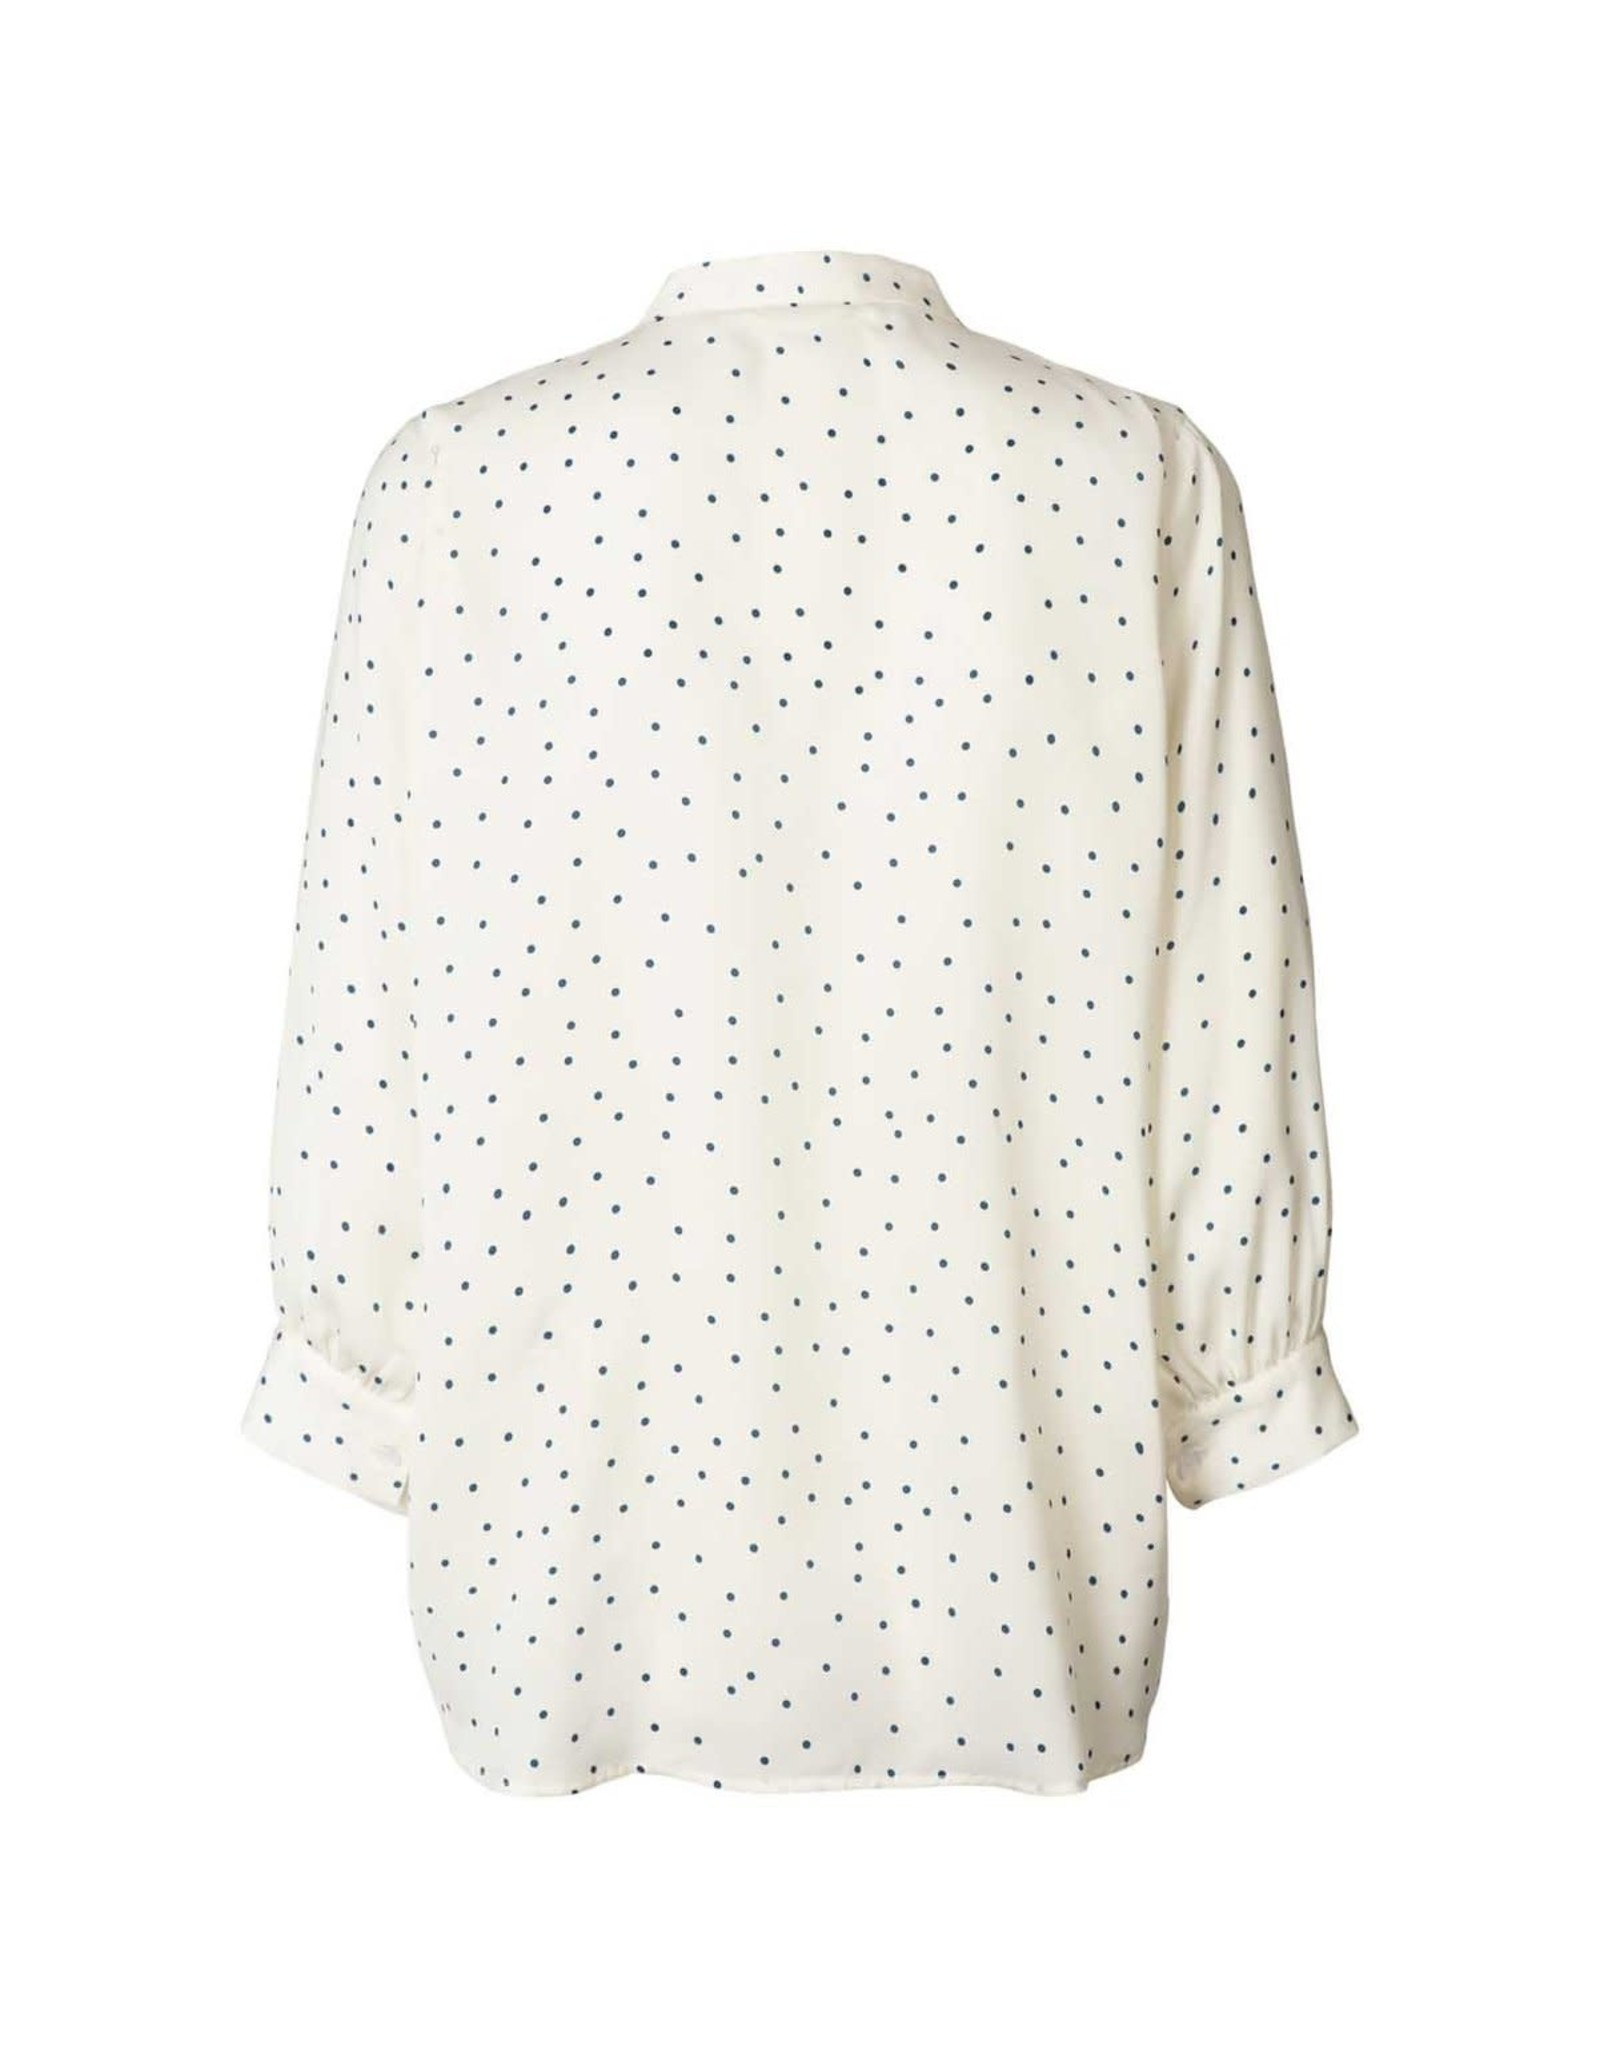 Lolly's Laundry Lollys Laundry - Ralph shirt - Creme